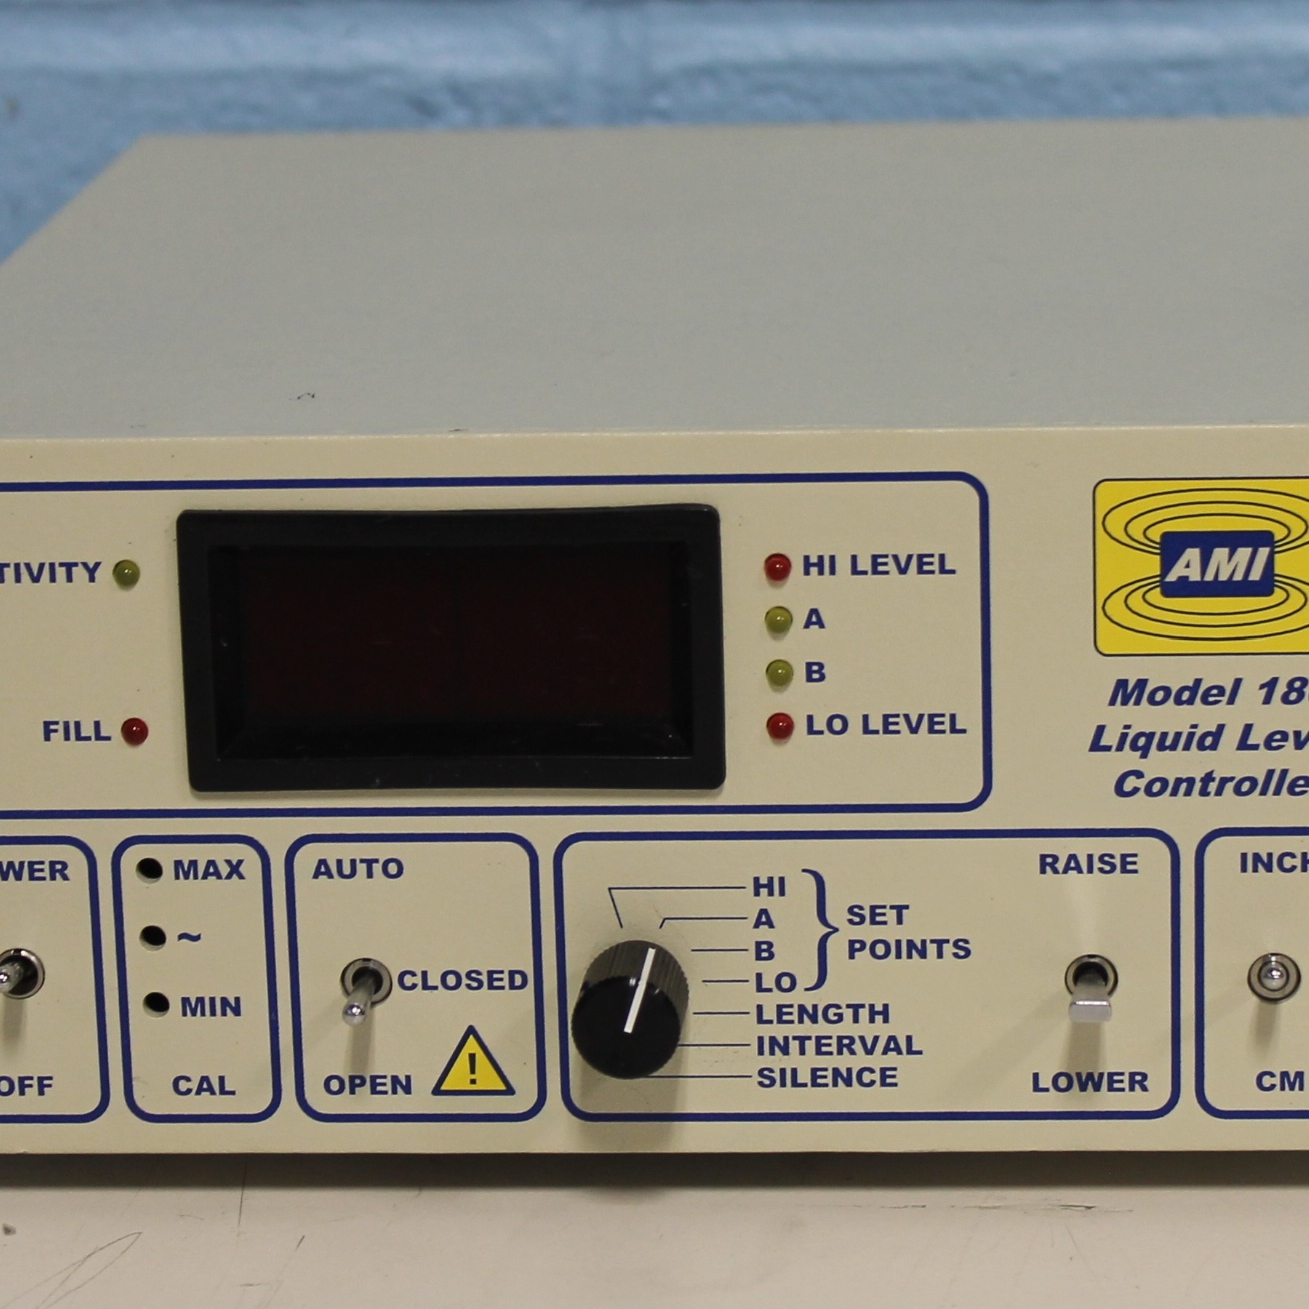 American Magnetics Model 186 Liquid Level Controller Image